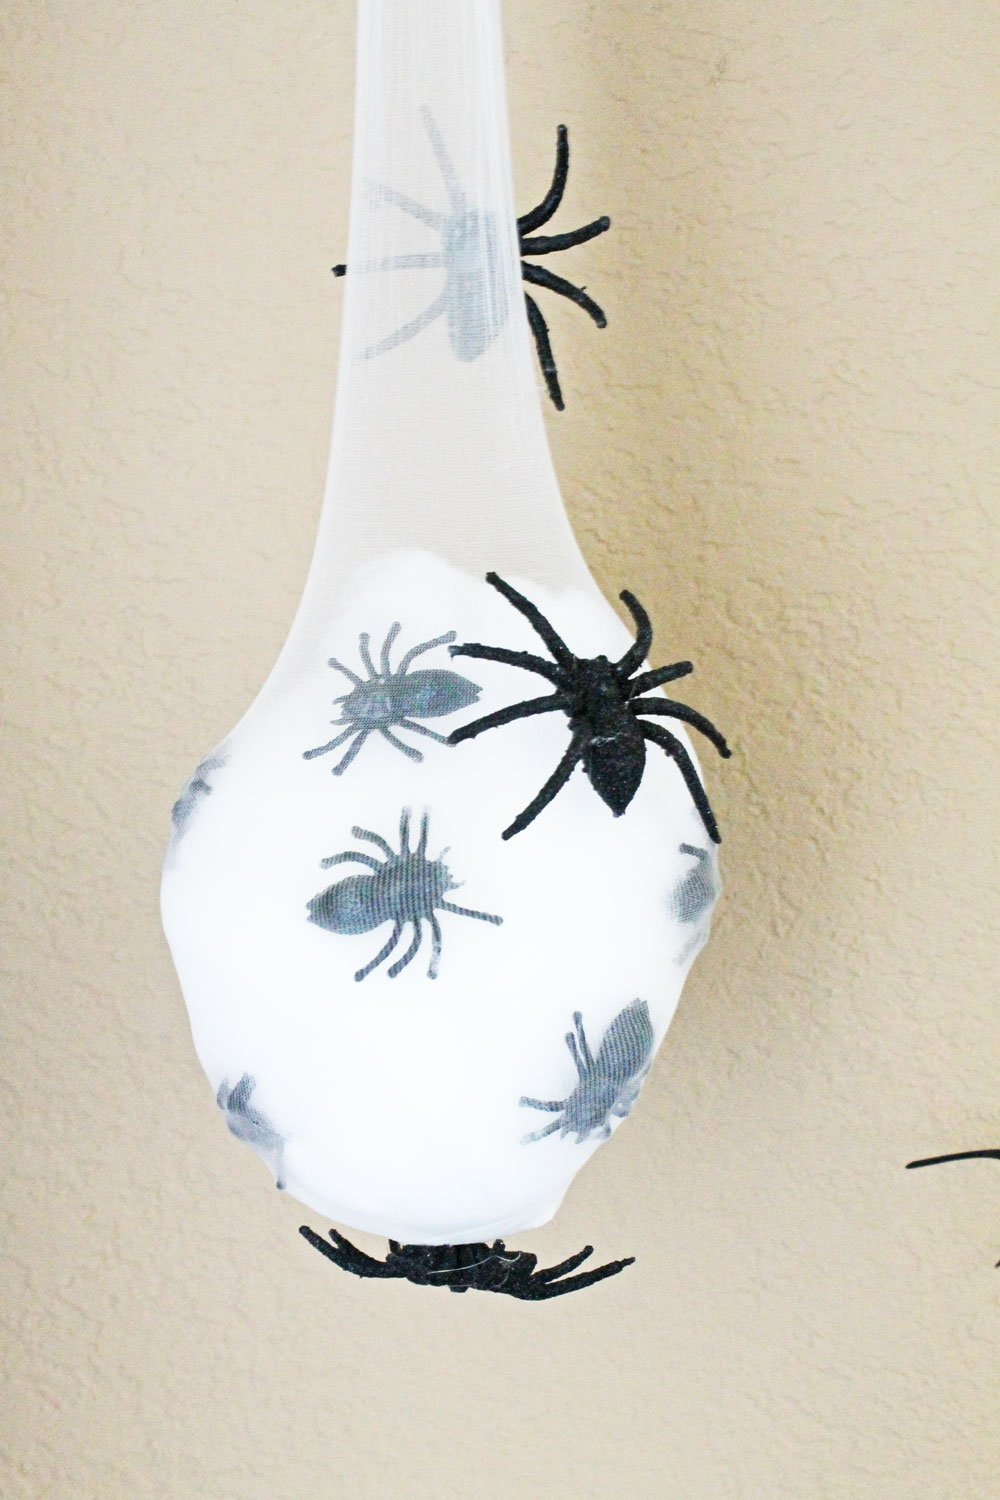 Spider egg sac decoration